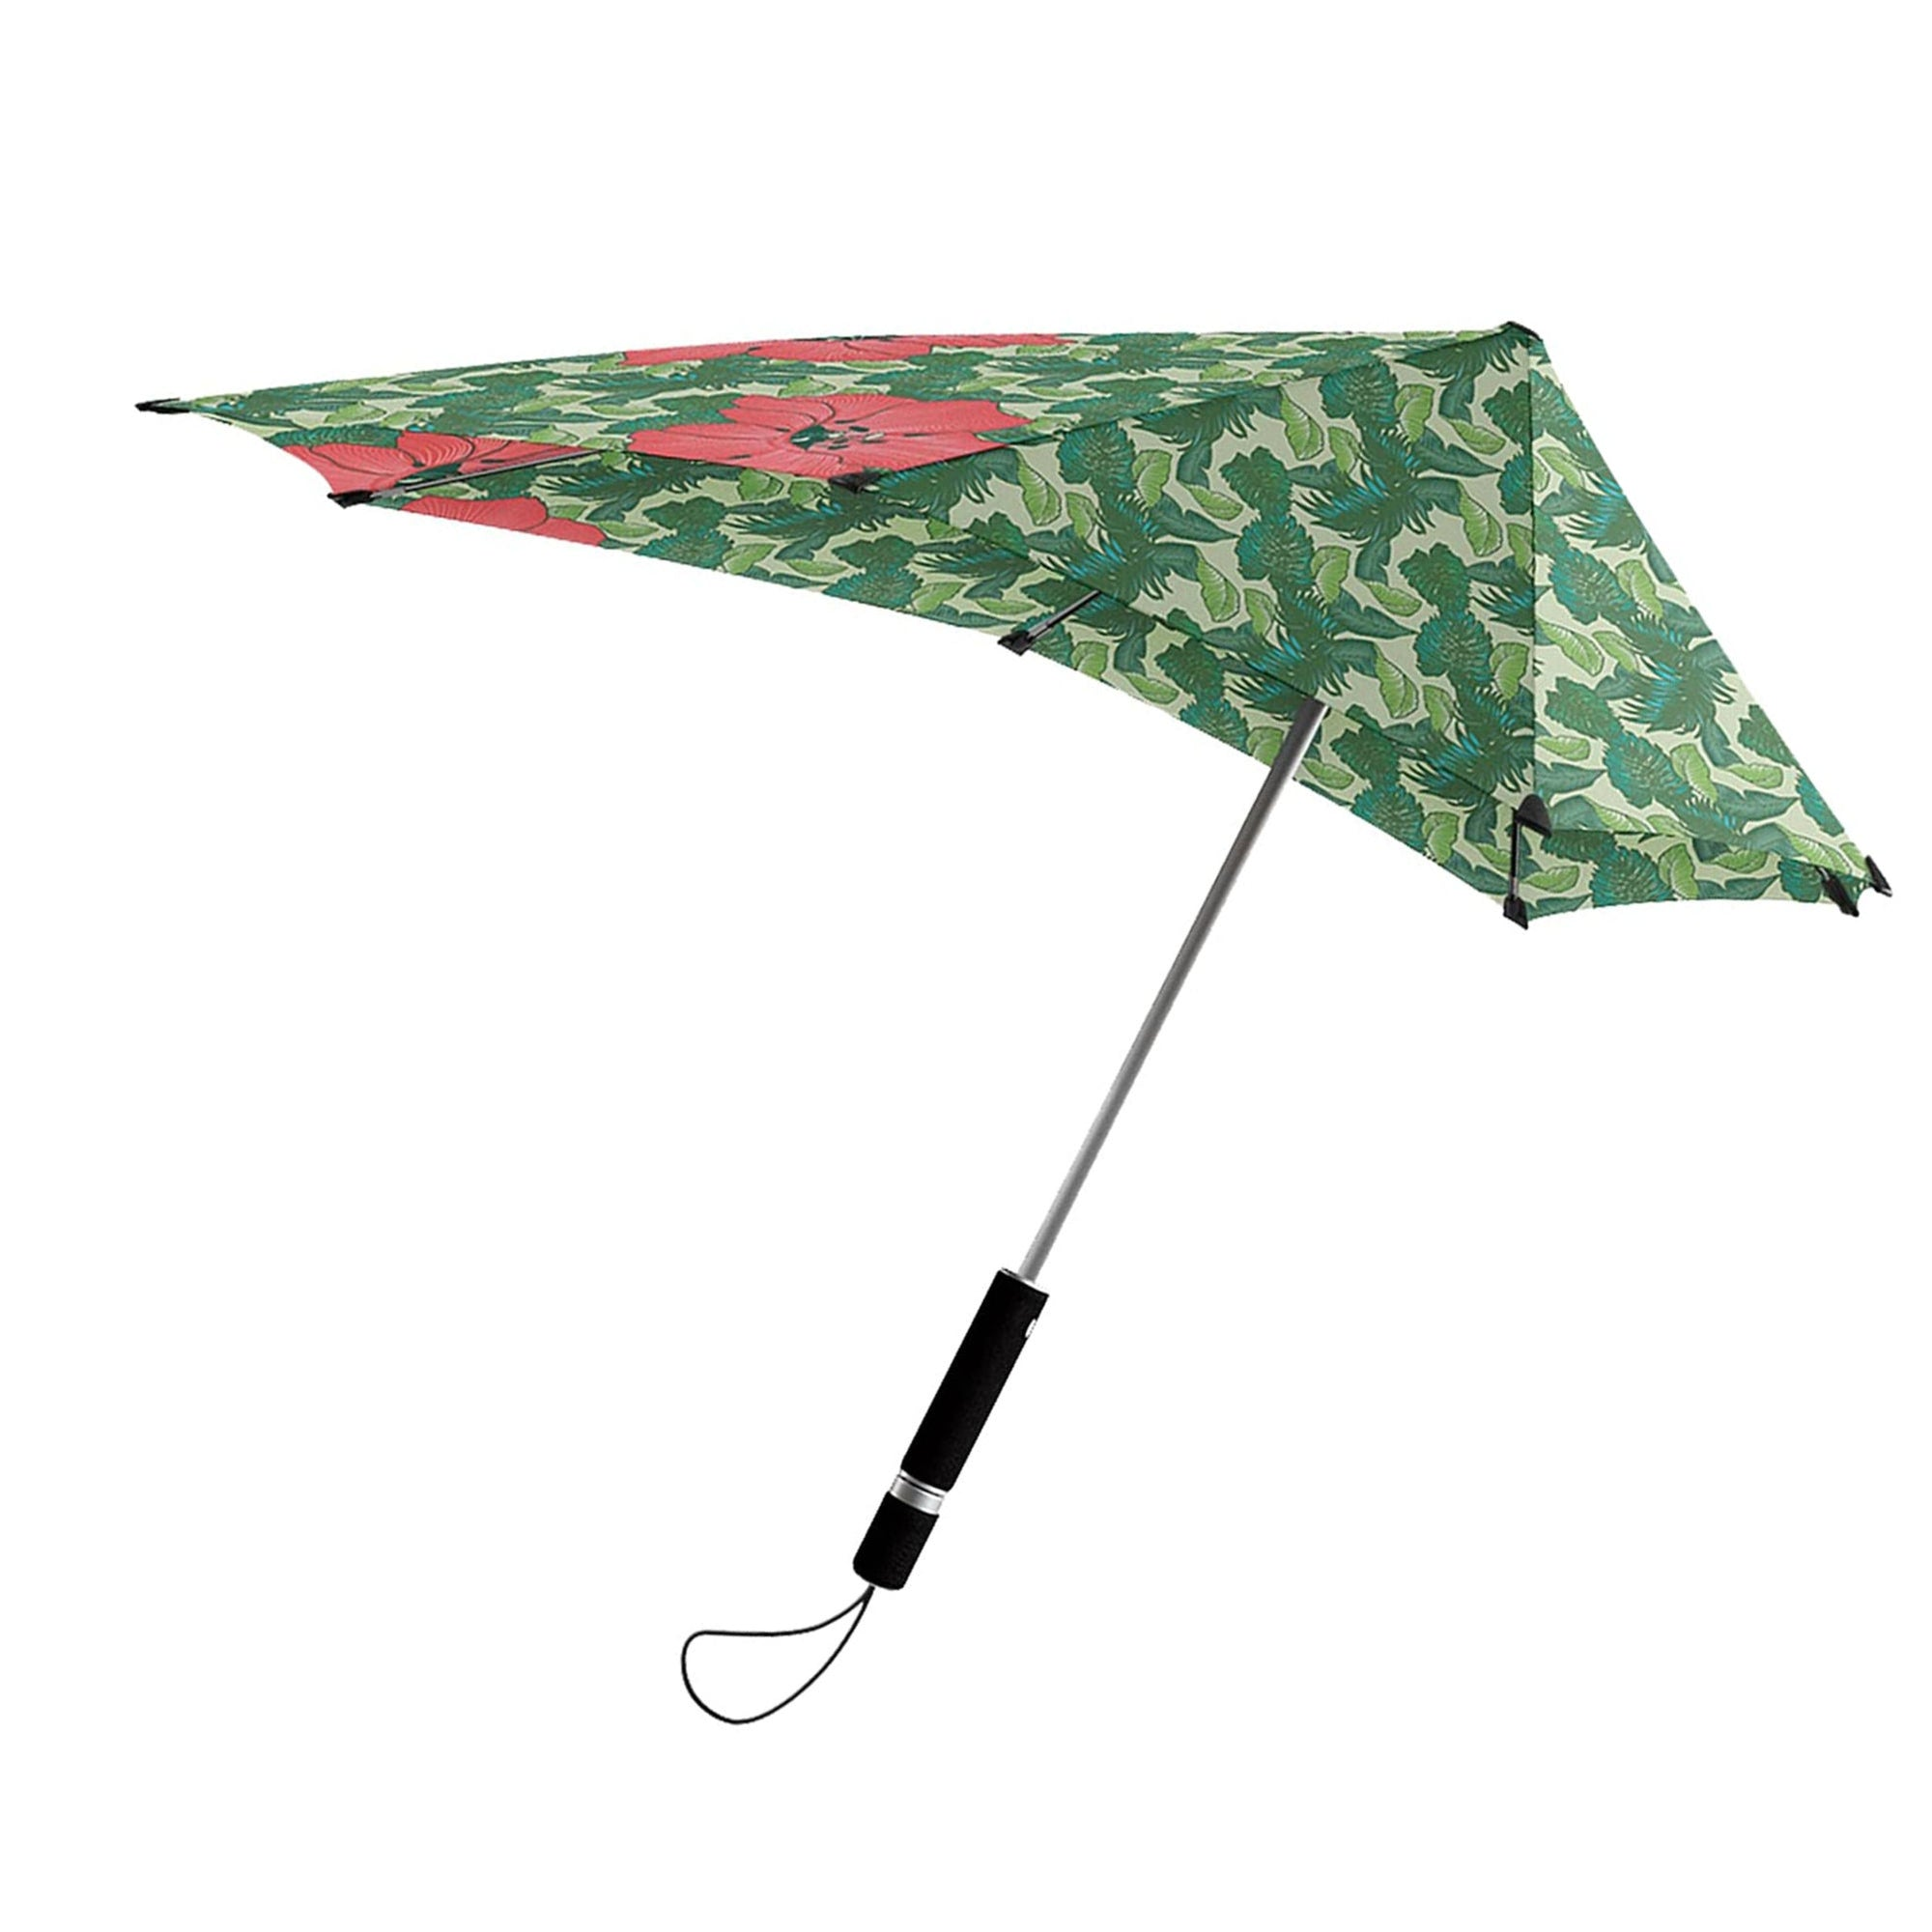 Senz° X DPM Original storm umbrella, forest